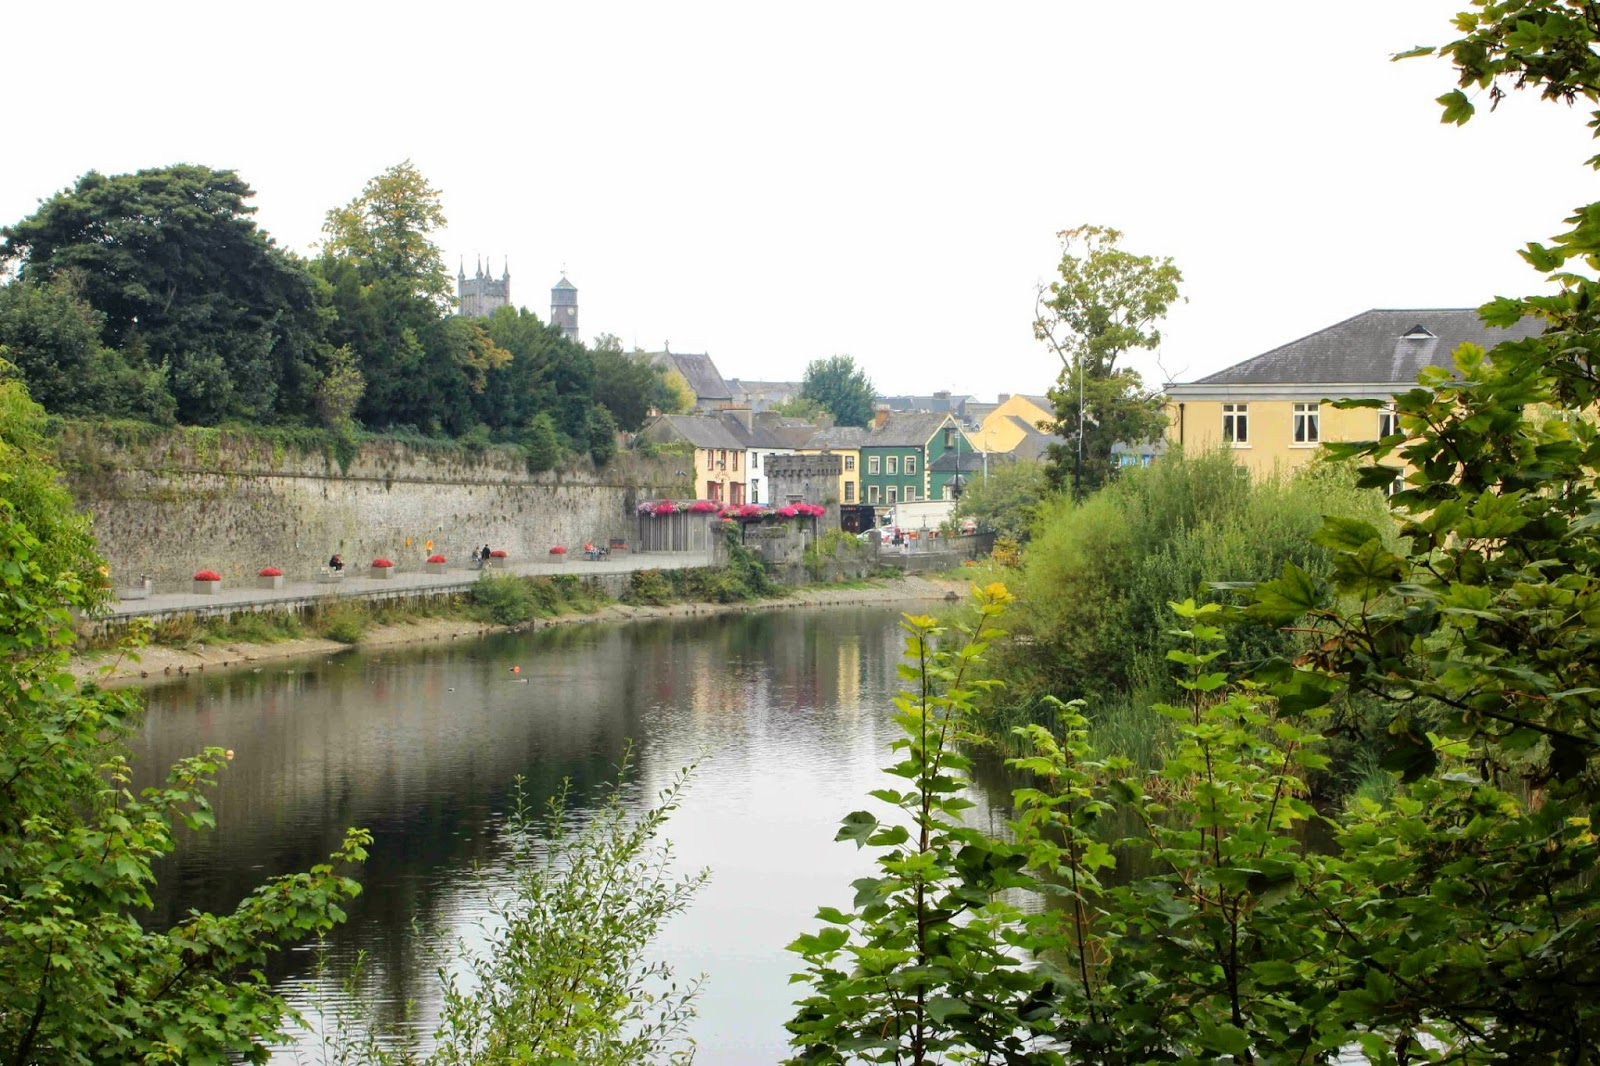 view of kilkenny from the castle gardens